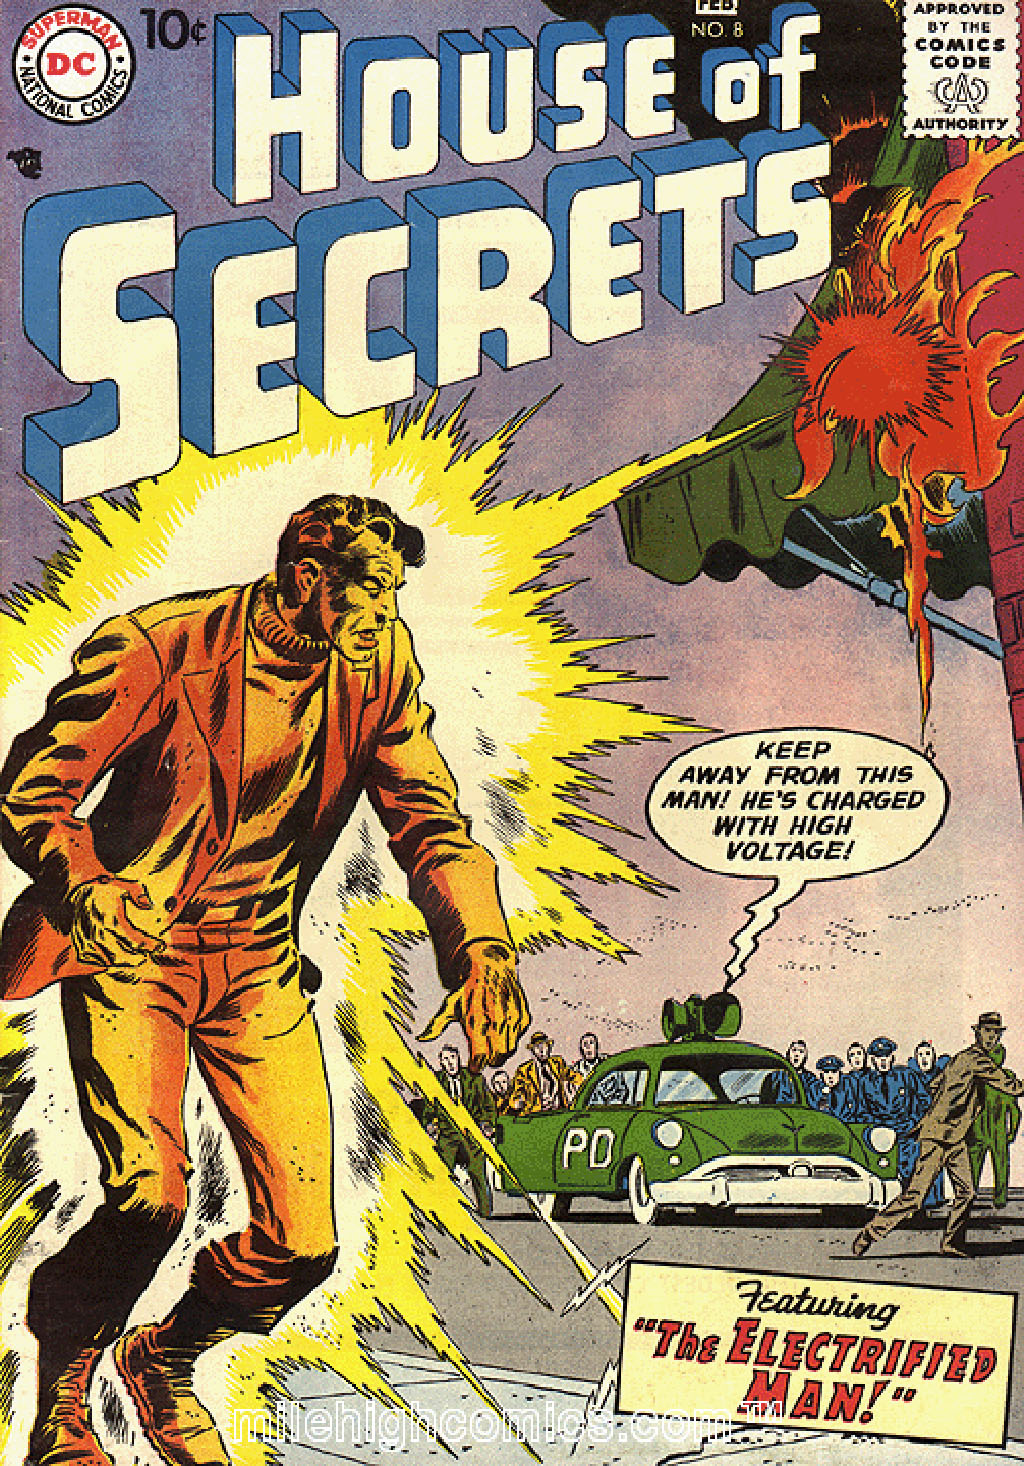 House of Secrets (1956) issue 8 - Page 1